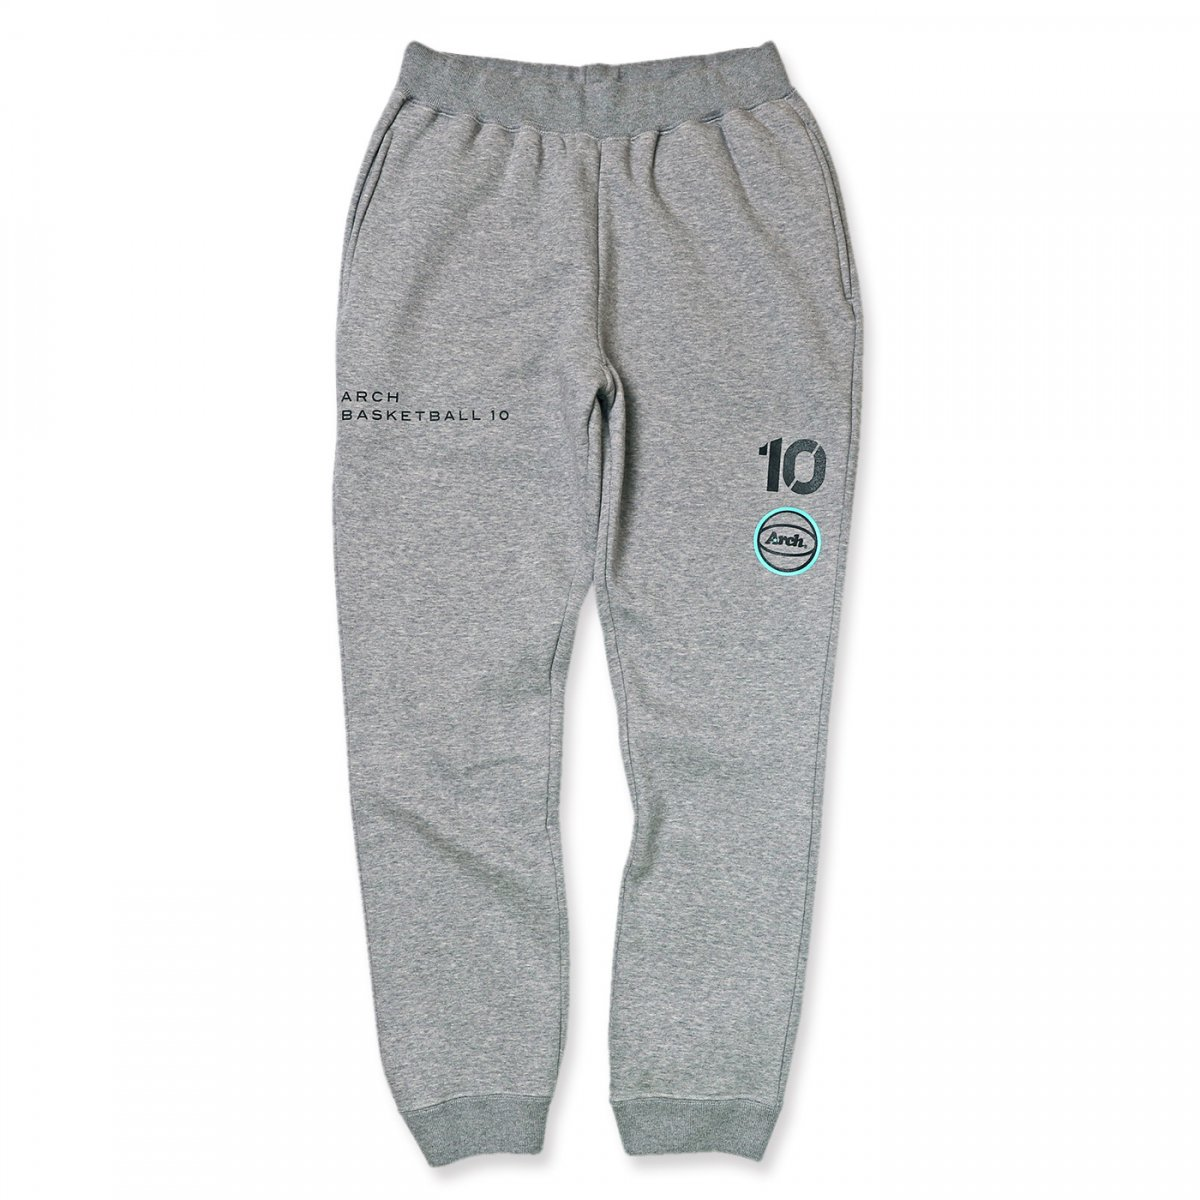 BB10 sweat pants【heather gray】